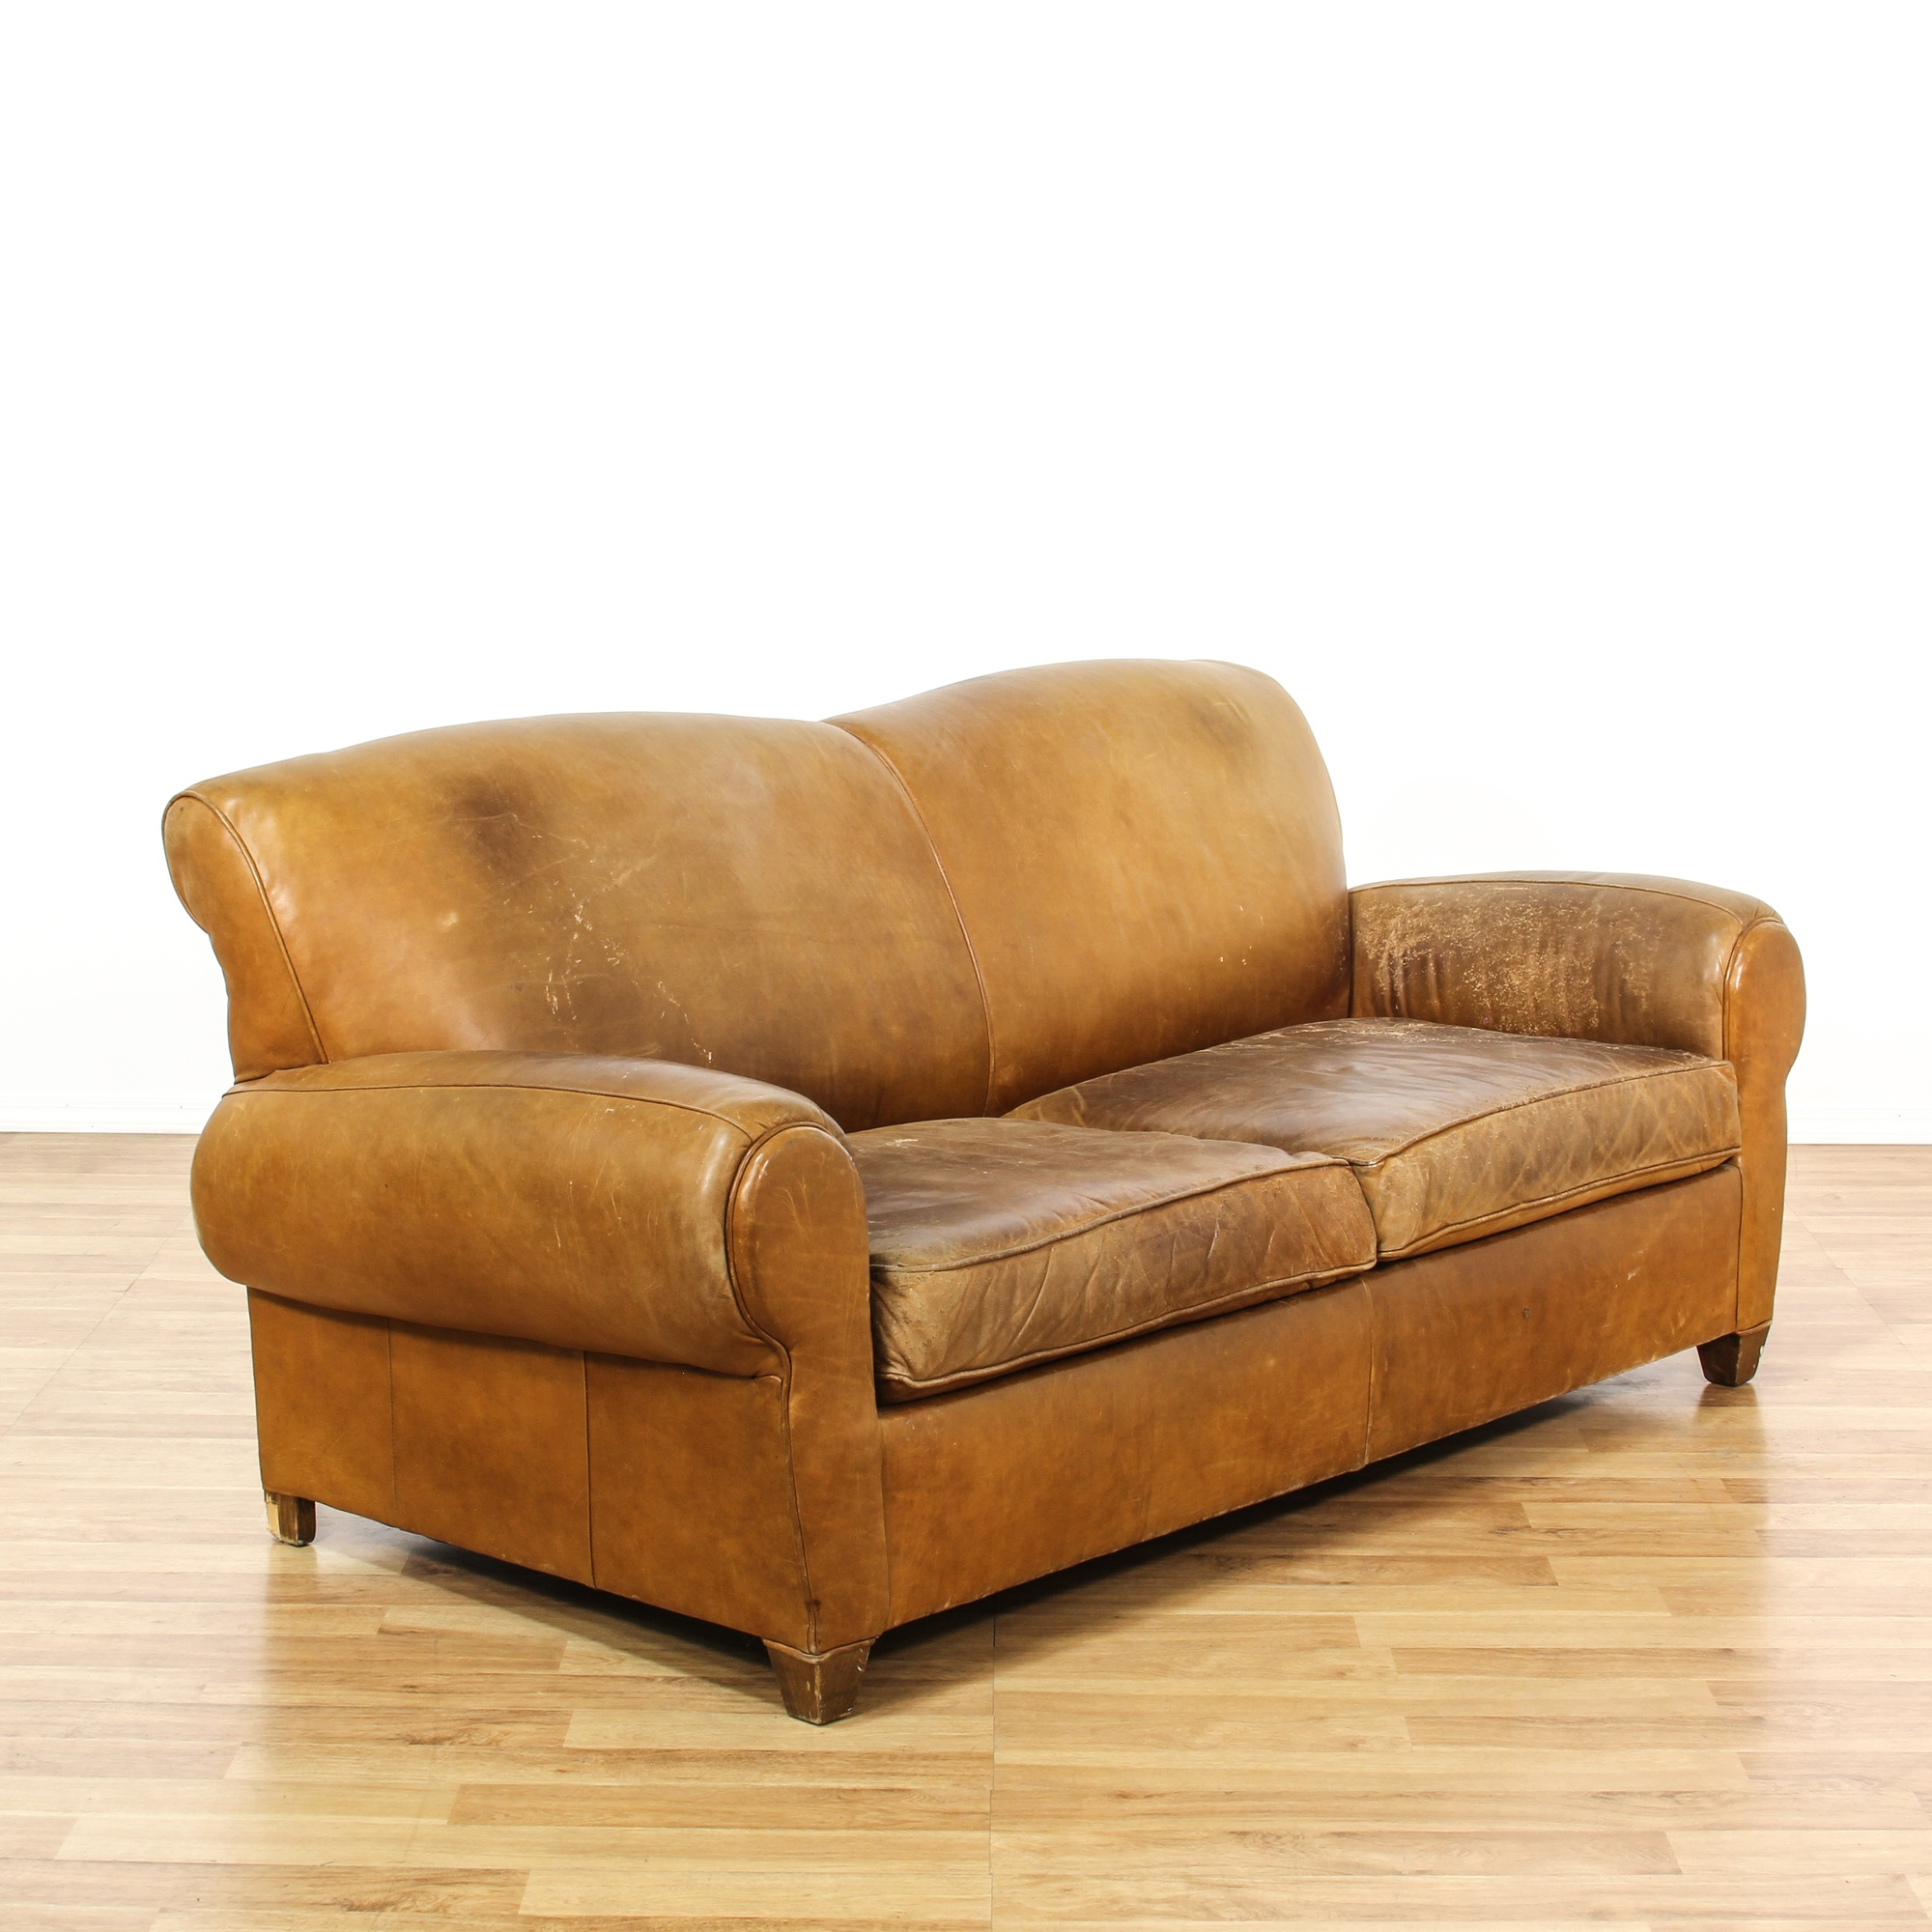 Leather upholstered sleeper sofa loveseat vintage for Sofa bed los angeles